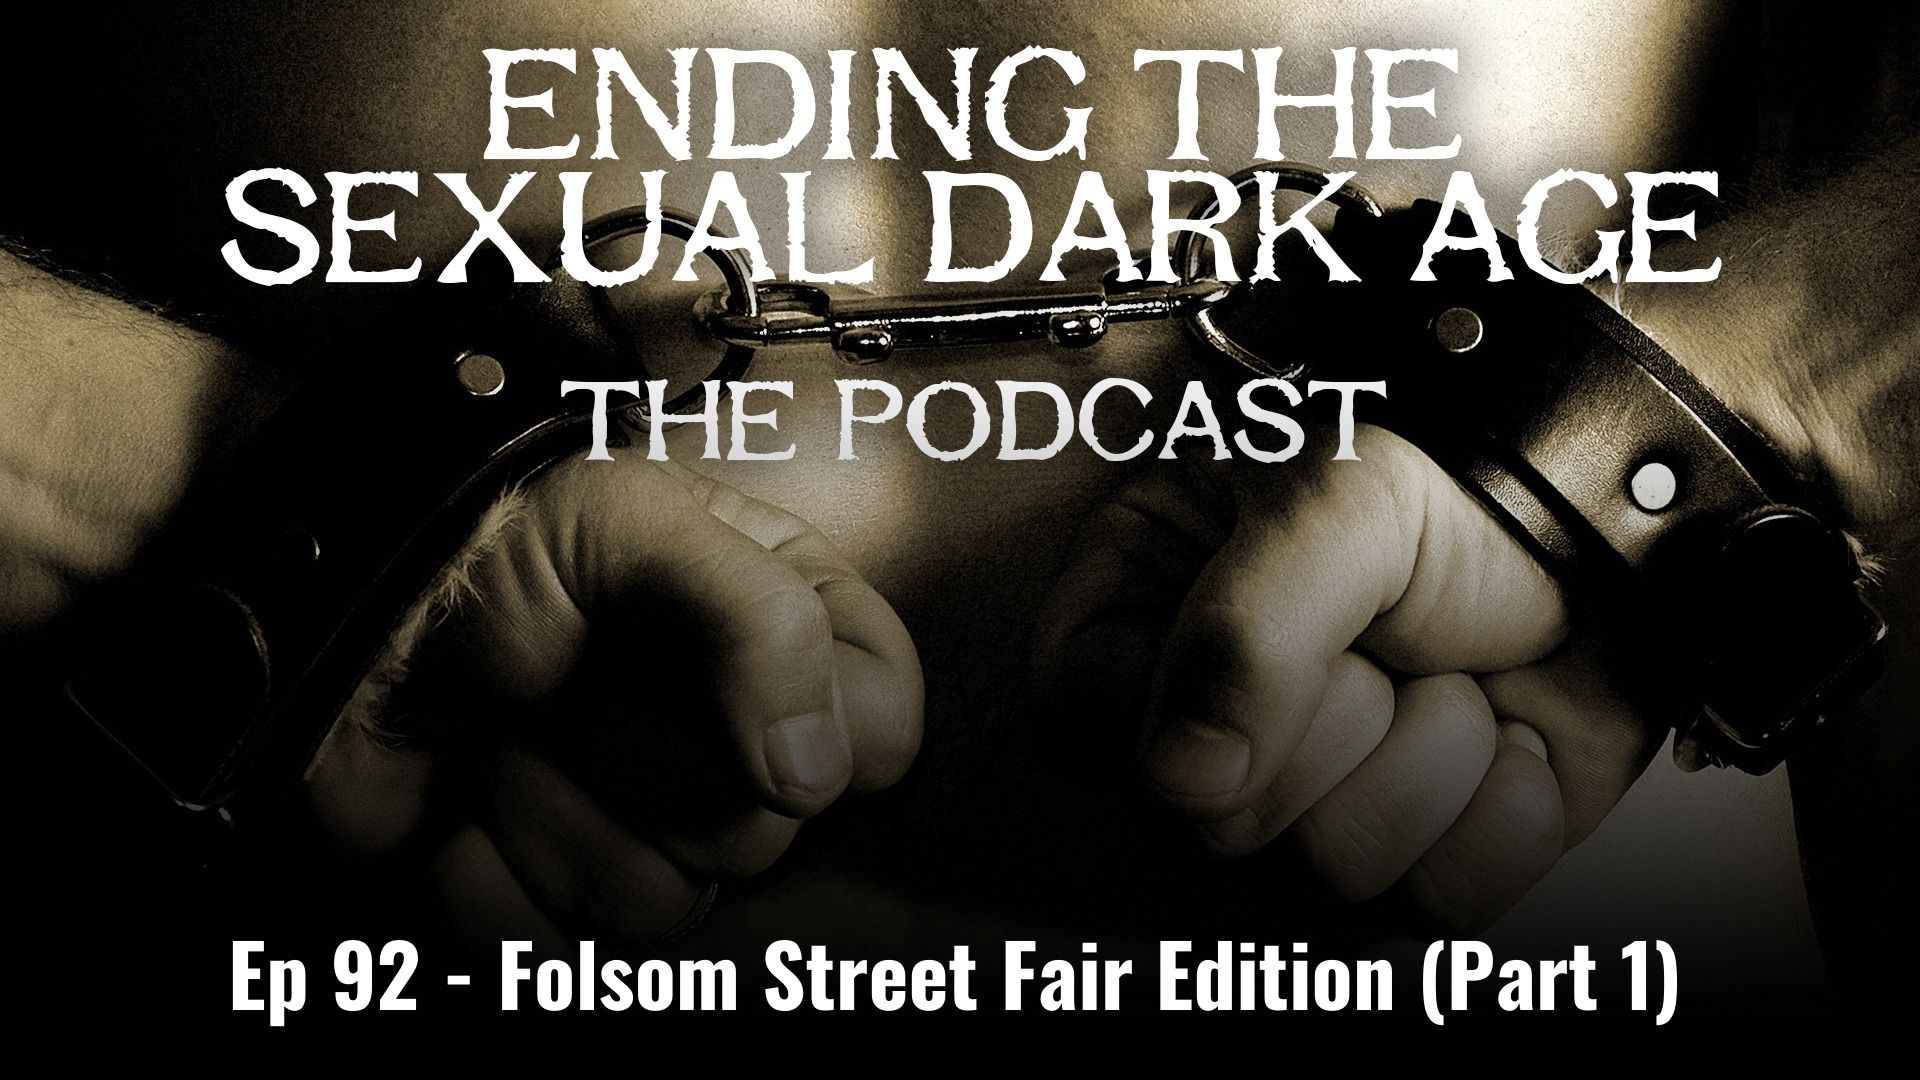 Episode 92 | Folsom Street Fair Edition, Part 1